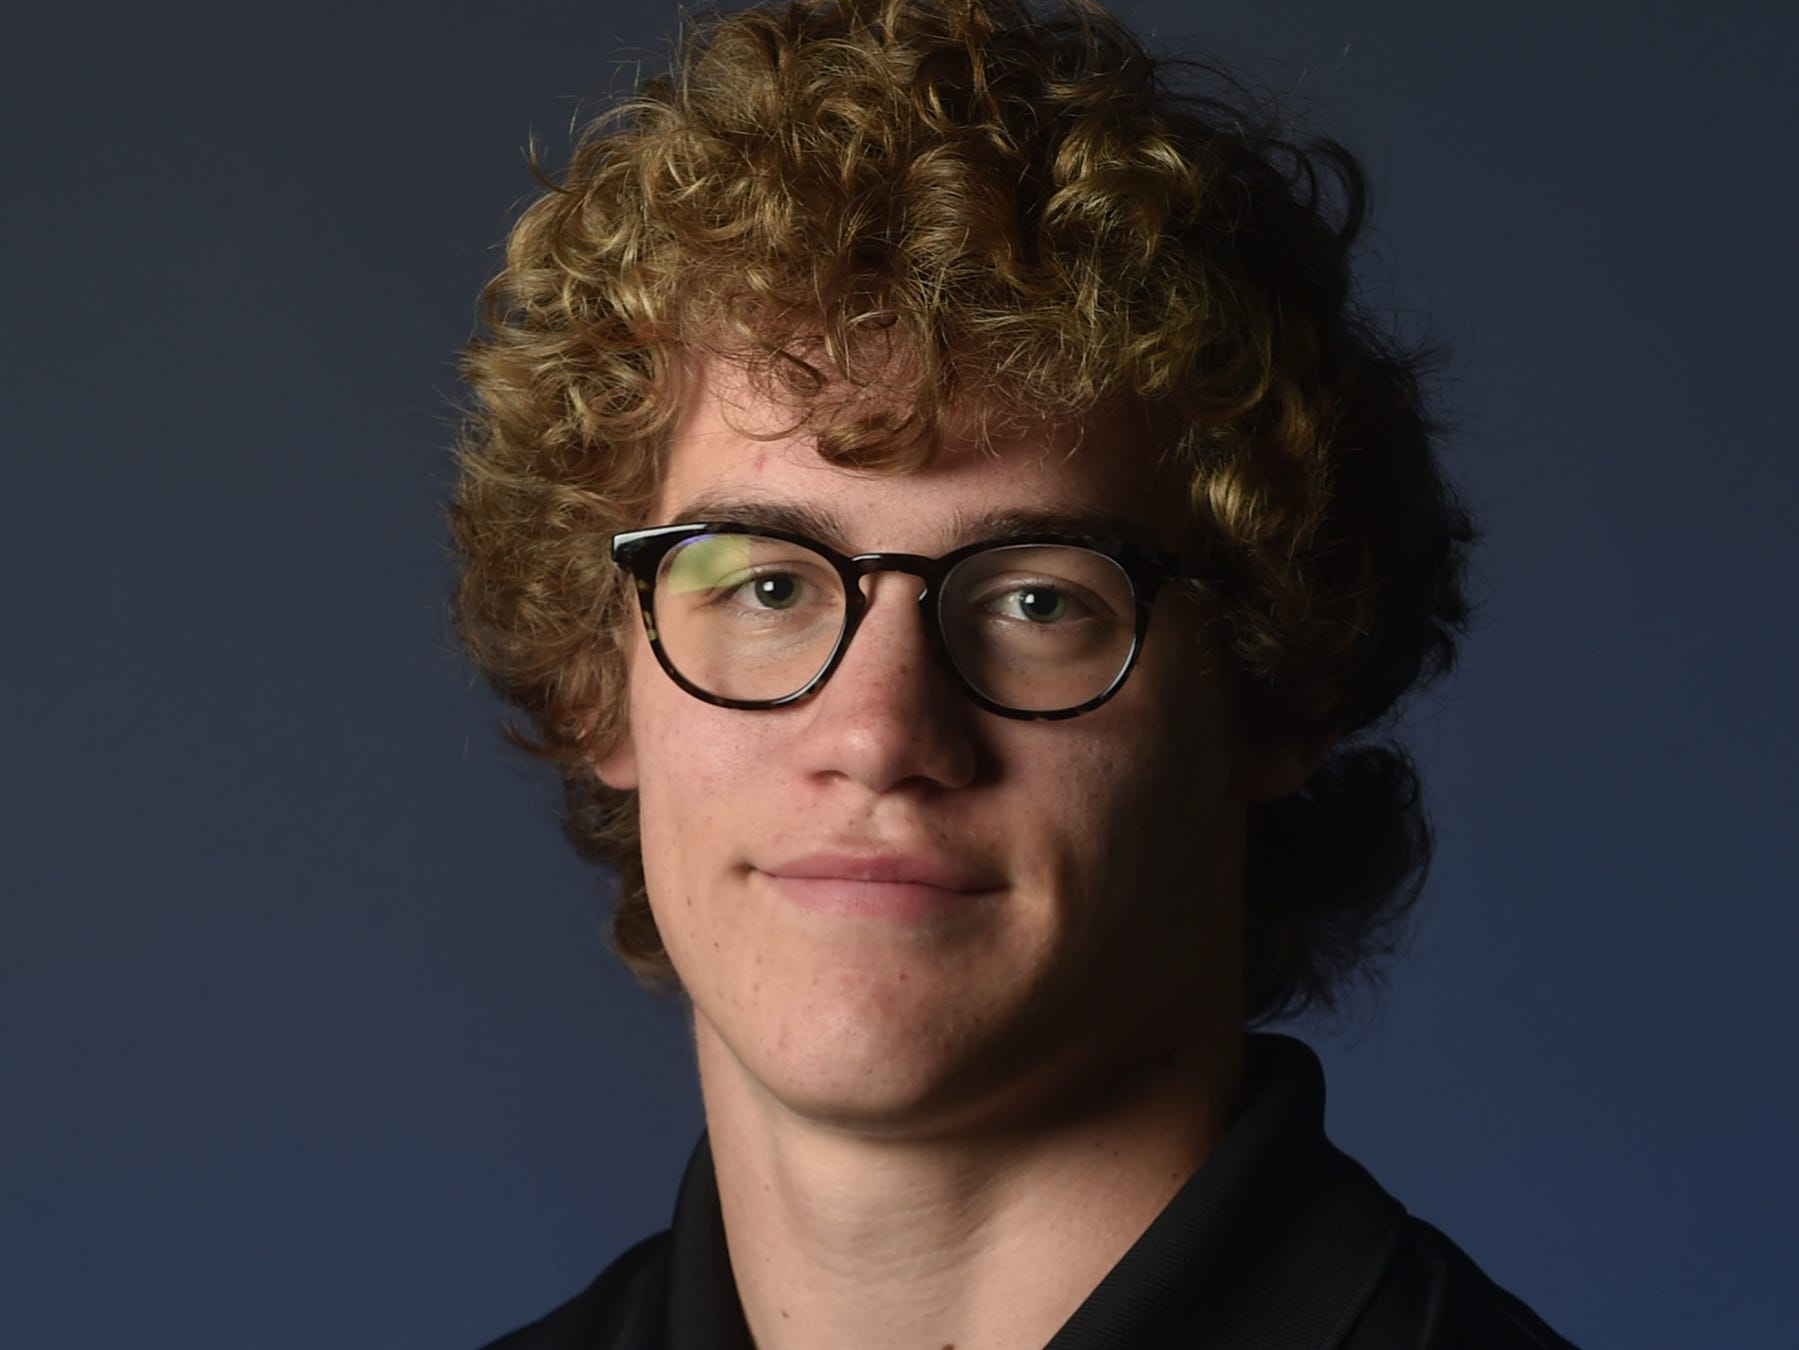 """JACK LENTHALL, Oaks Christian, Defensive line: The 6-foot-2, 215-pound senior edge rusher was an underrated cog in the Lions' blue-chip defensive front seven, which included three Pac-12 Conference commits. The Marmonte League co-Defensive Lineman of the Year had 10 sacks, 13 hurries, 15 tackles for losses, four forced fumbles, three fumble recoveries and an interception. He had a three-sack game in the 56-14 win over Alemany. He and his twin brother Nate also star for the Oaks Christian lacrosse team. He enjoys watching """"Friends,"""" listening to 21 Savage and eating steak. His favorite athlete is Khalil Mack and he roots for the Chicago Bears."""